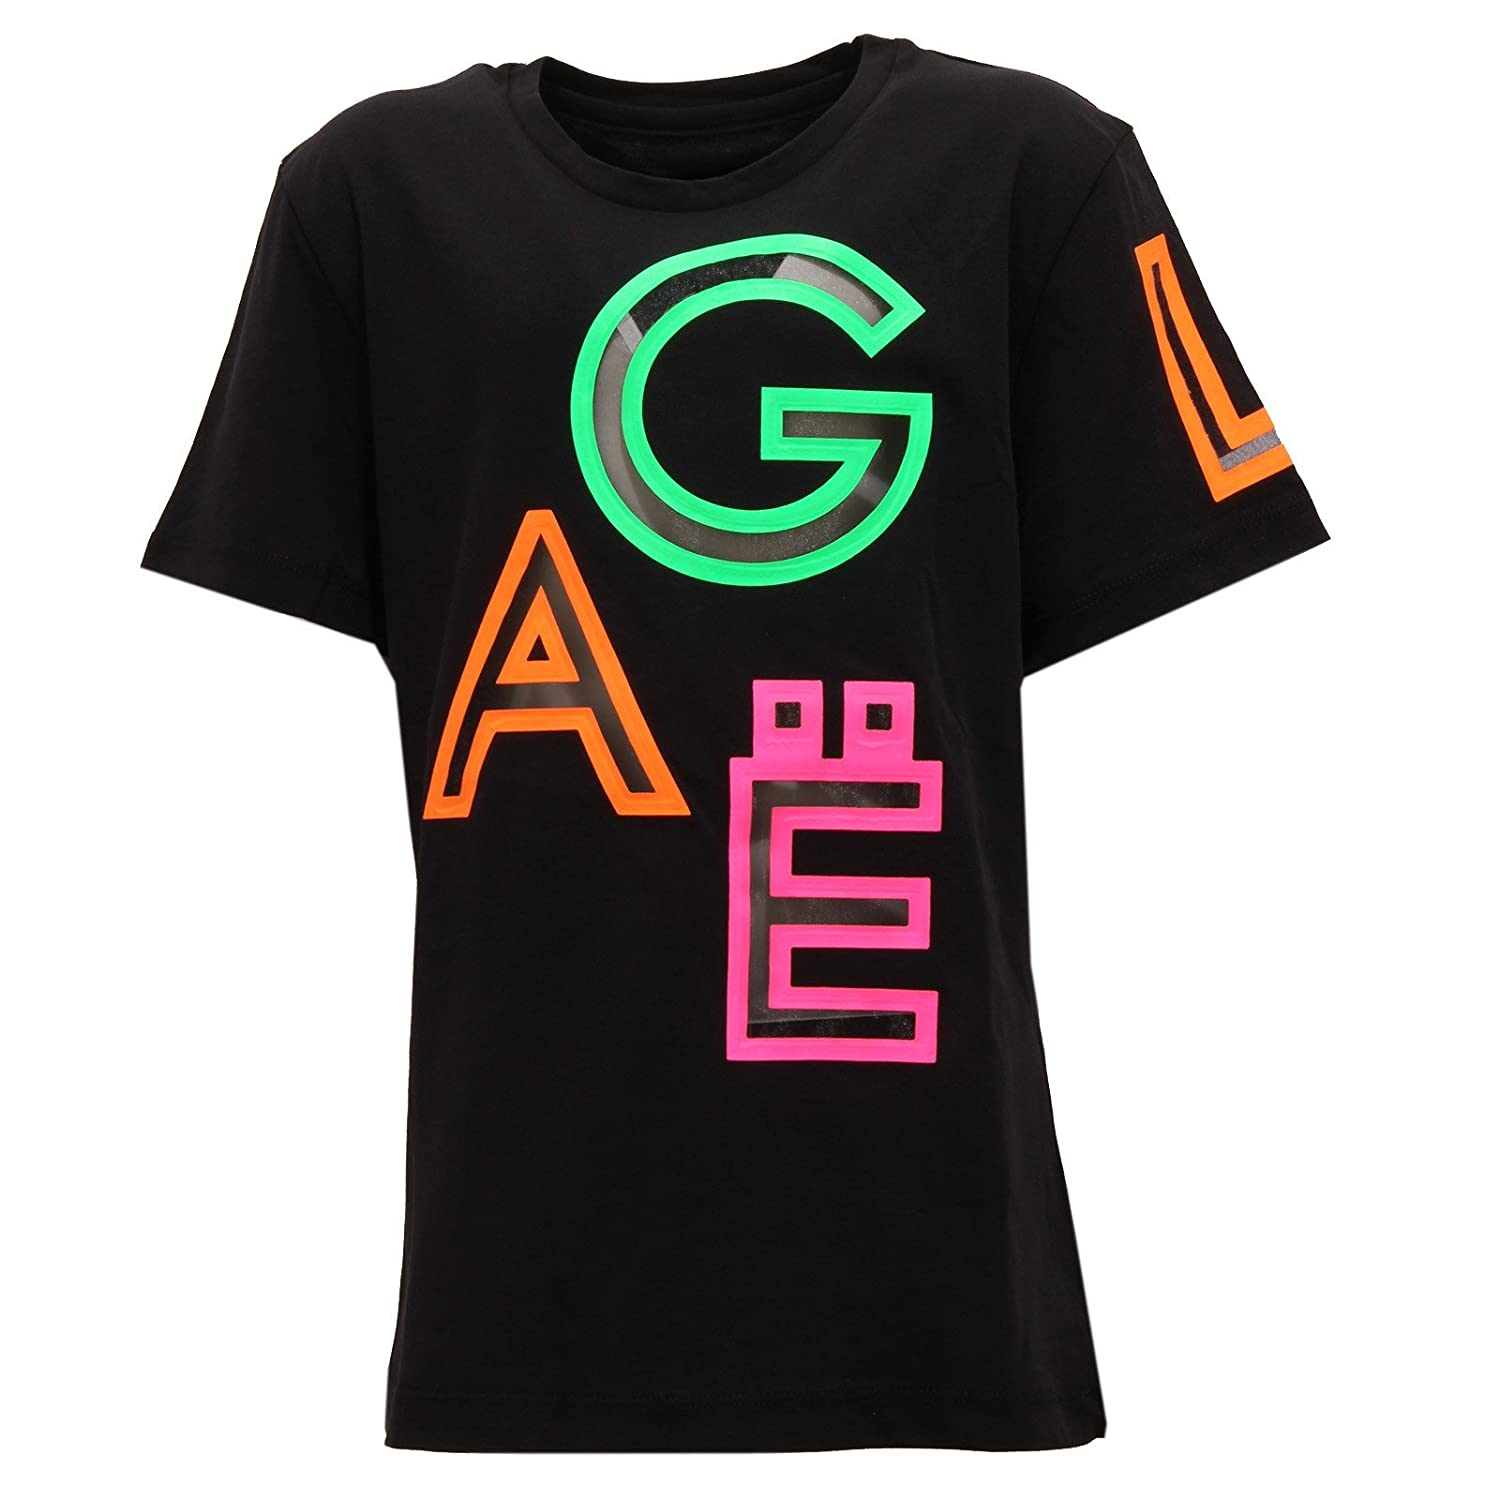 noir M (12 YEARS) GAeLLE 3336U Maglia Bimba Teen Paris noir noir t-Shirt Enfant Girl